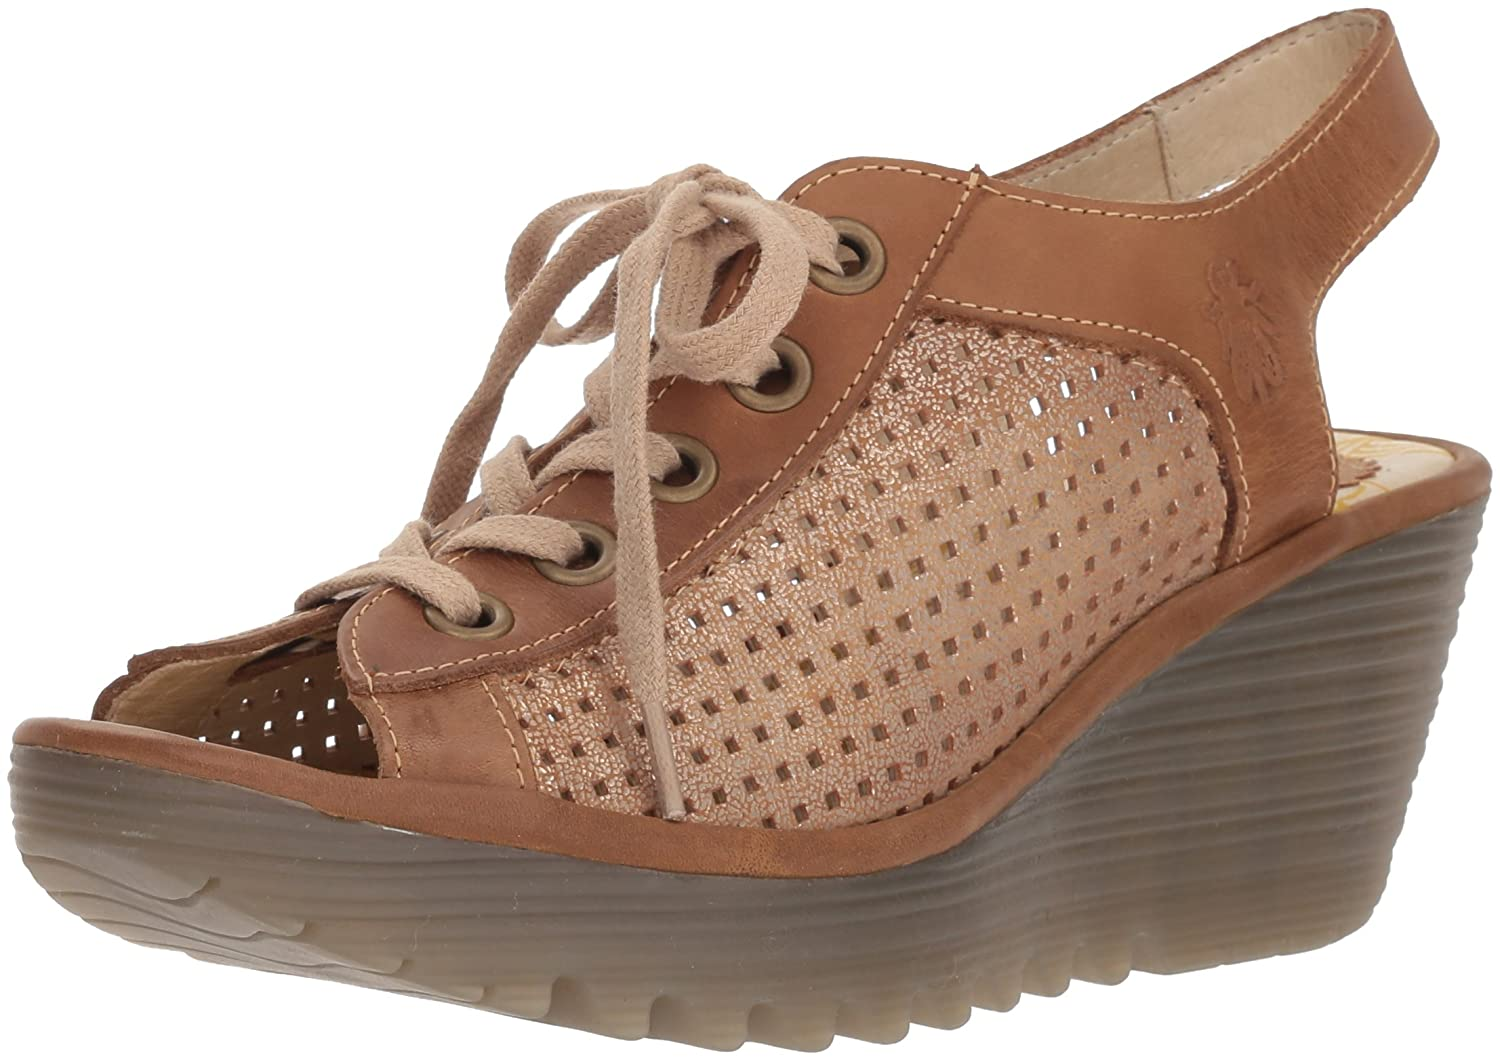 FLY London Women's YEKI841FLY Wedge Sandal B075B8ZVPT 42 M EU|Luna/Camel Cool/Rug